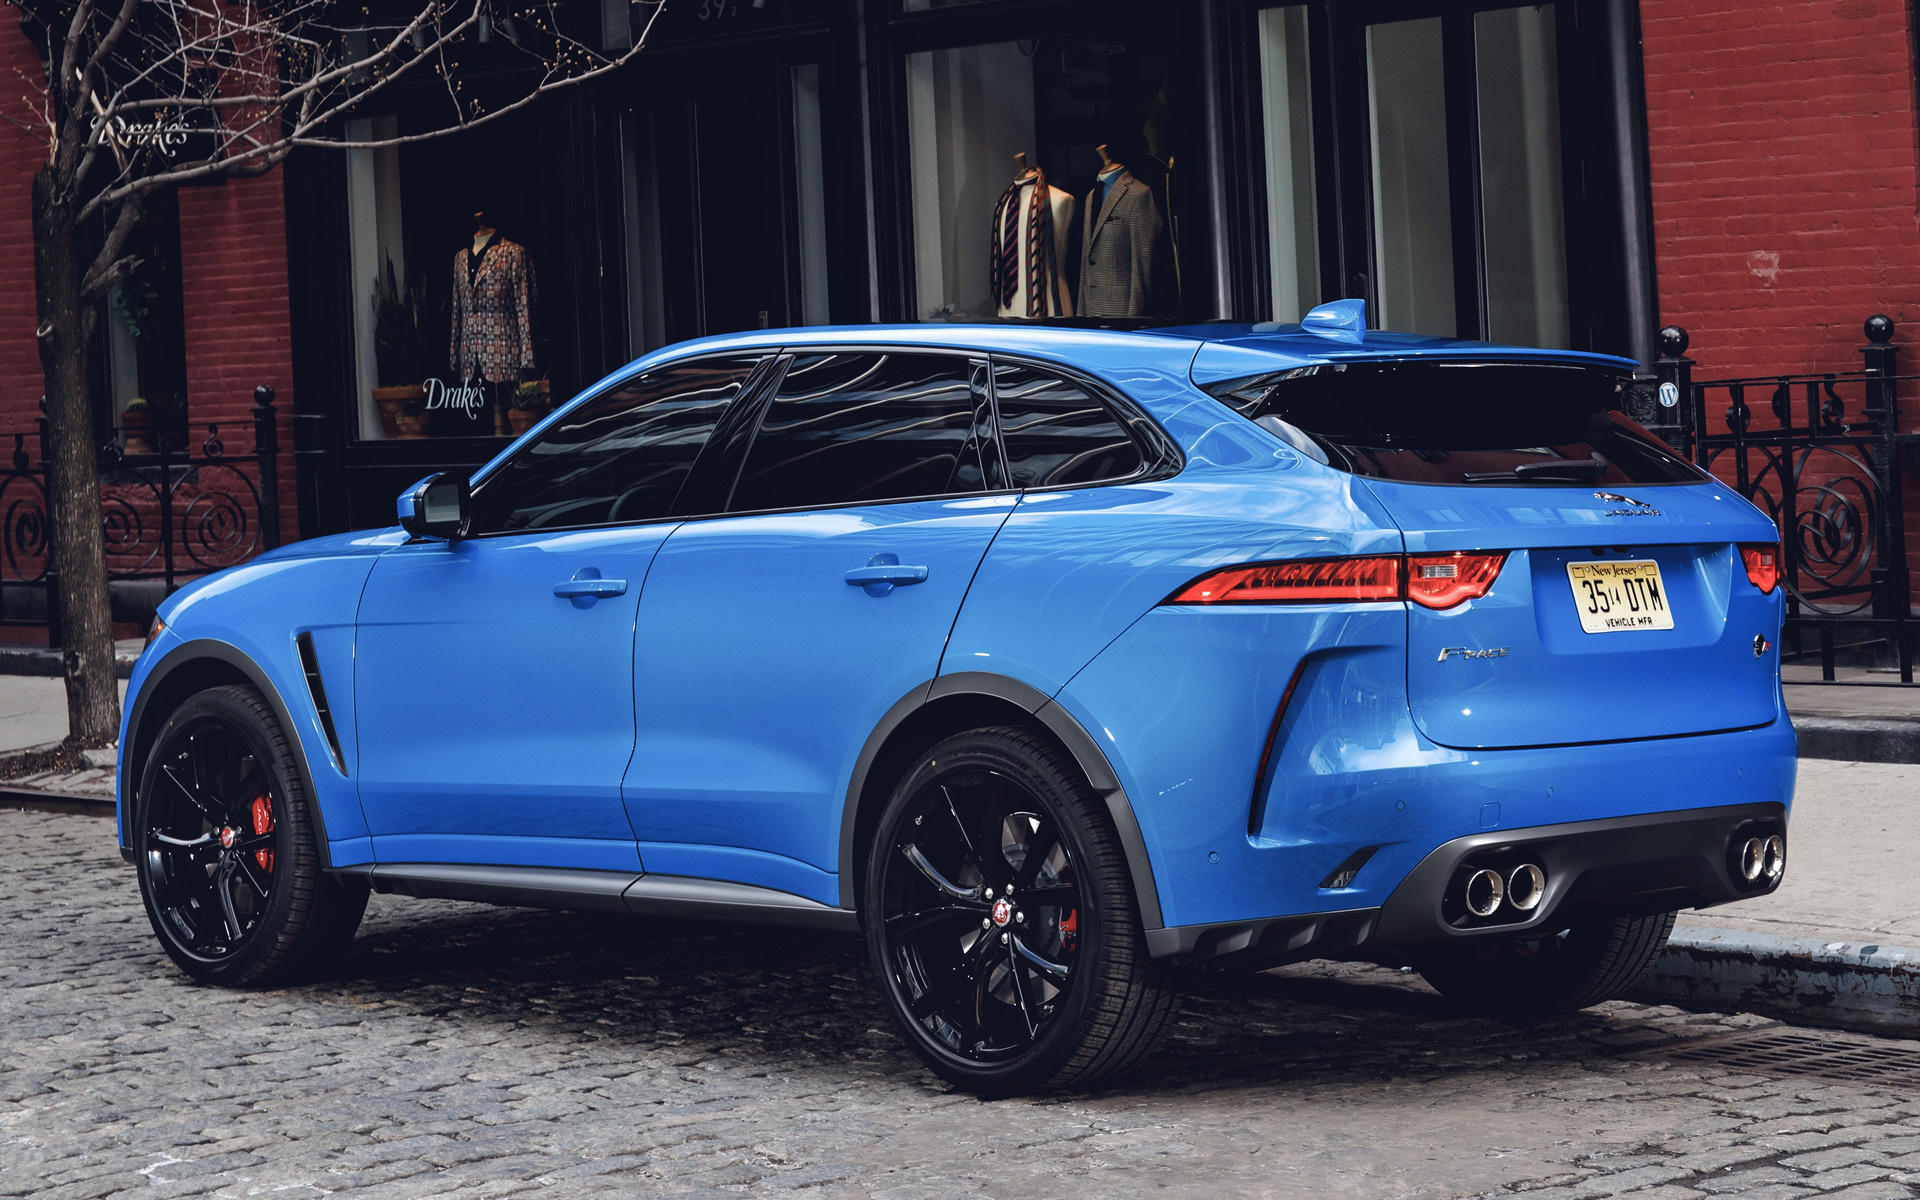 Genesis Car Wallpaper Jaguar F Pace Svr 2019 Us Wallpapers And Hd Images Car